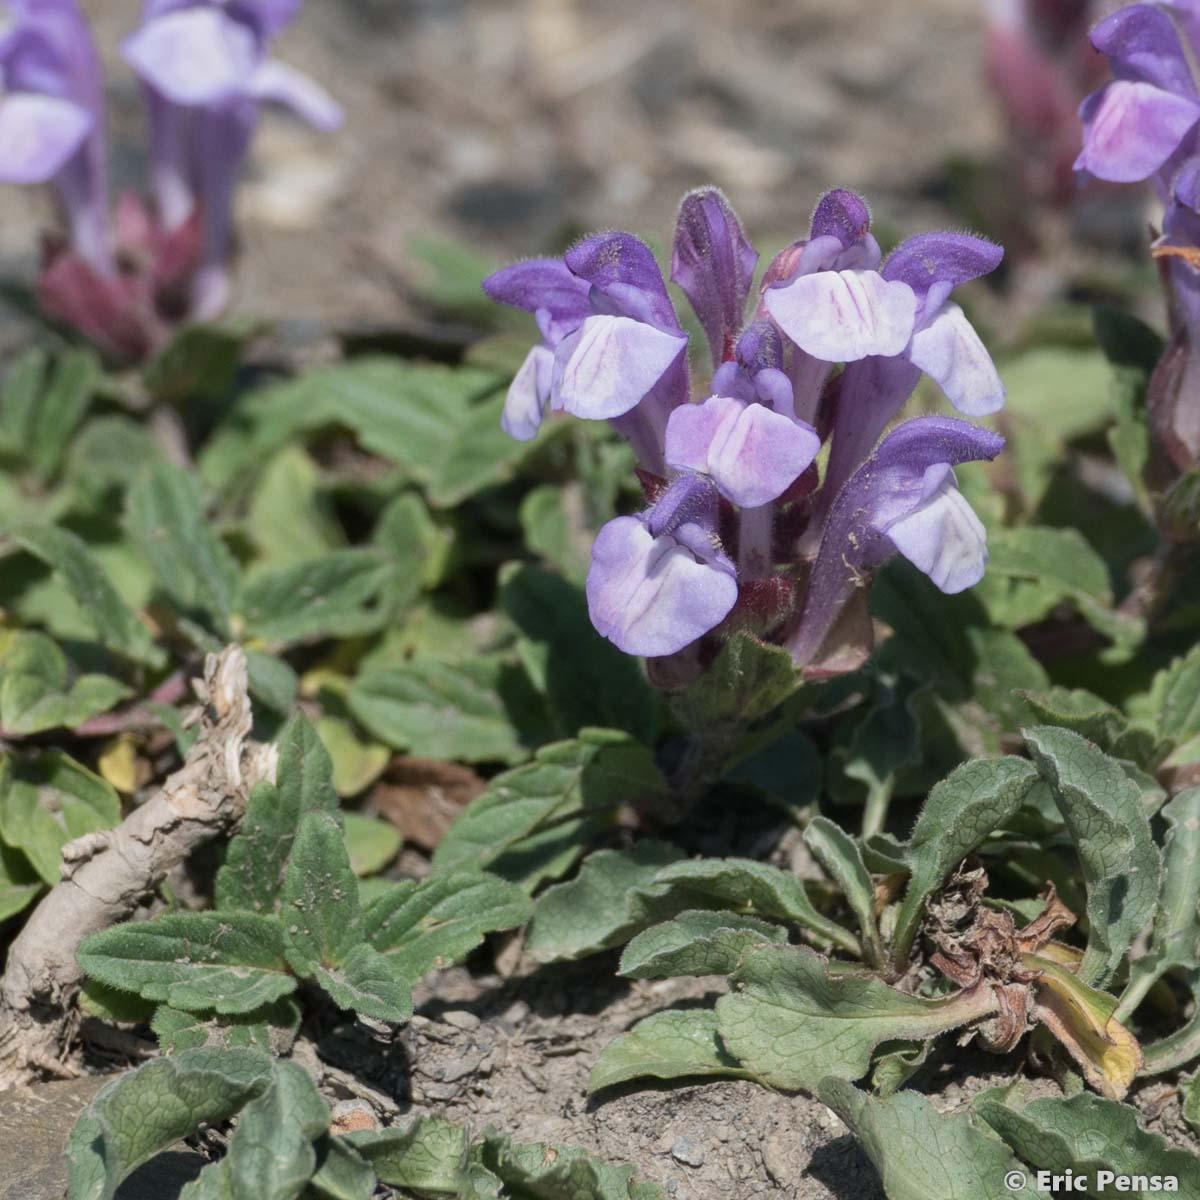 Scutellaire des Alpes - Scutellaria alpina